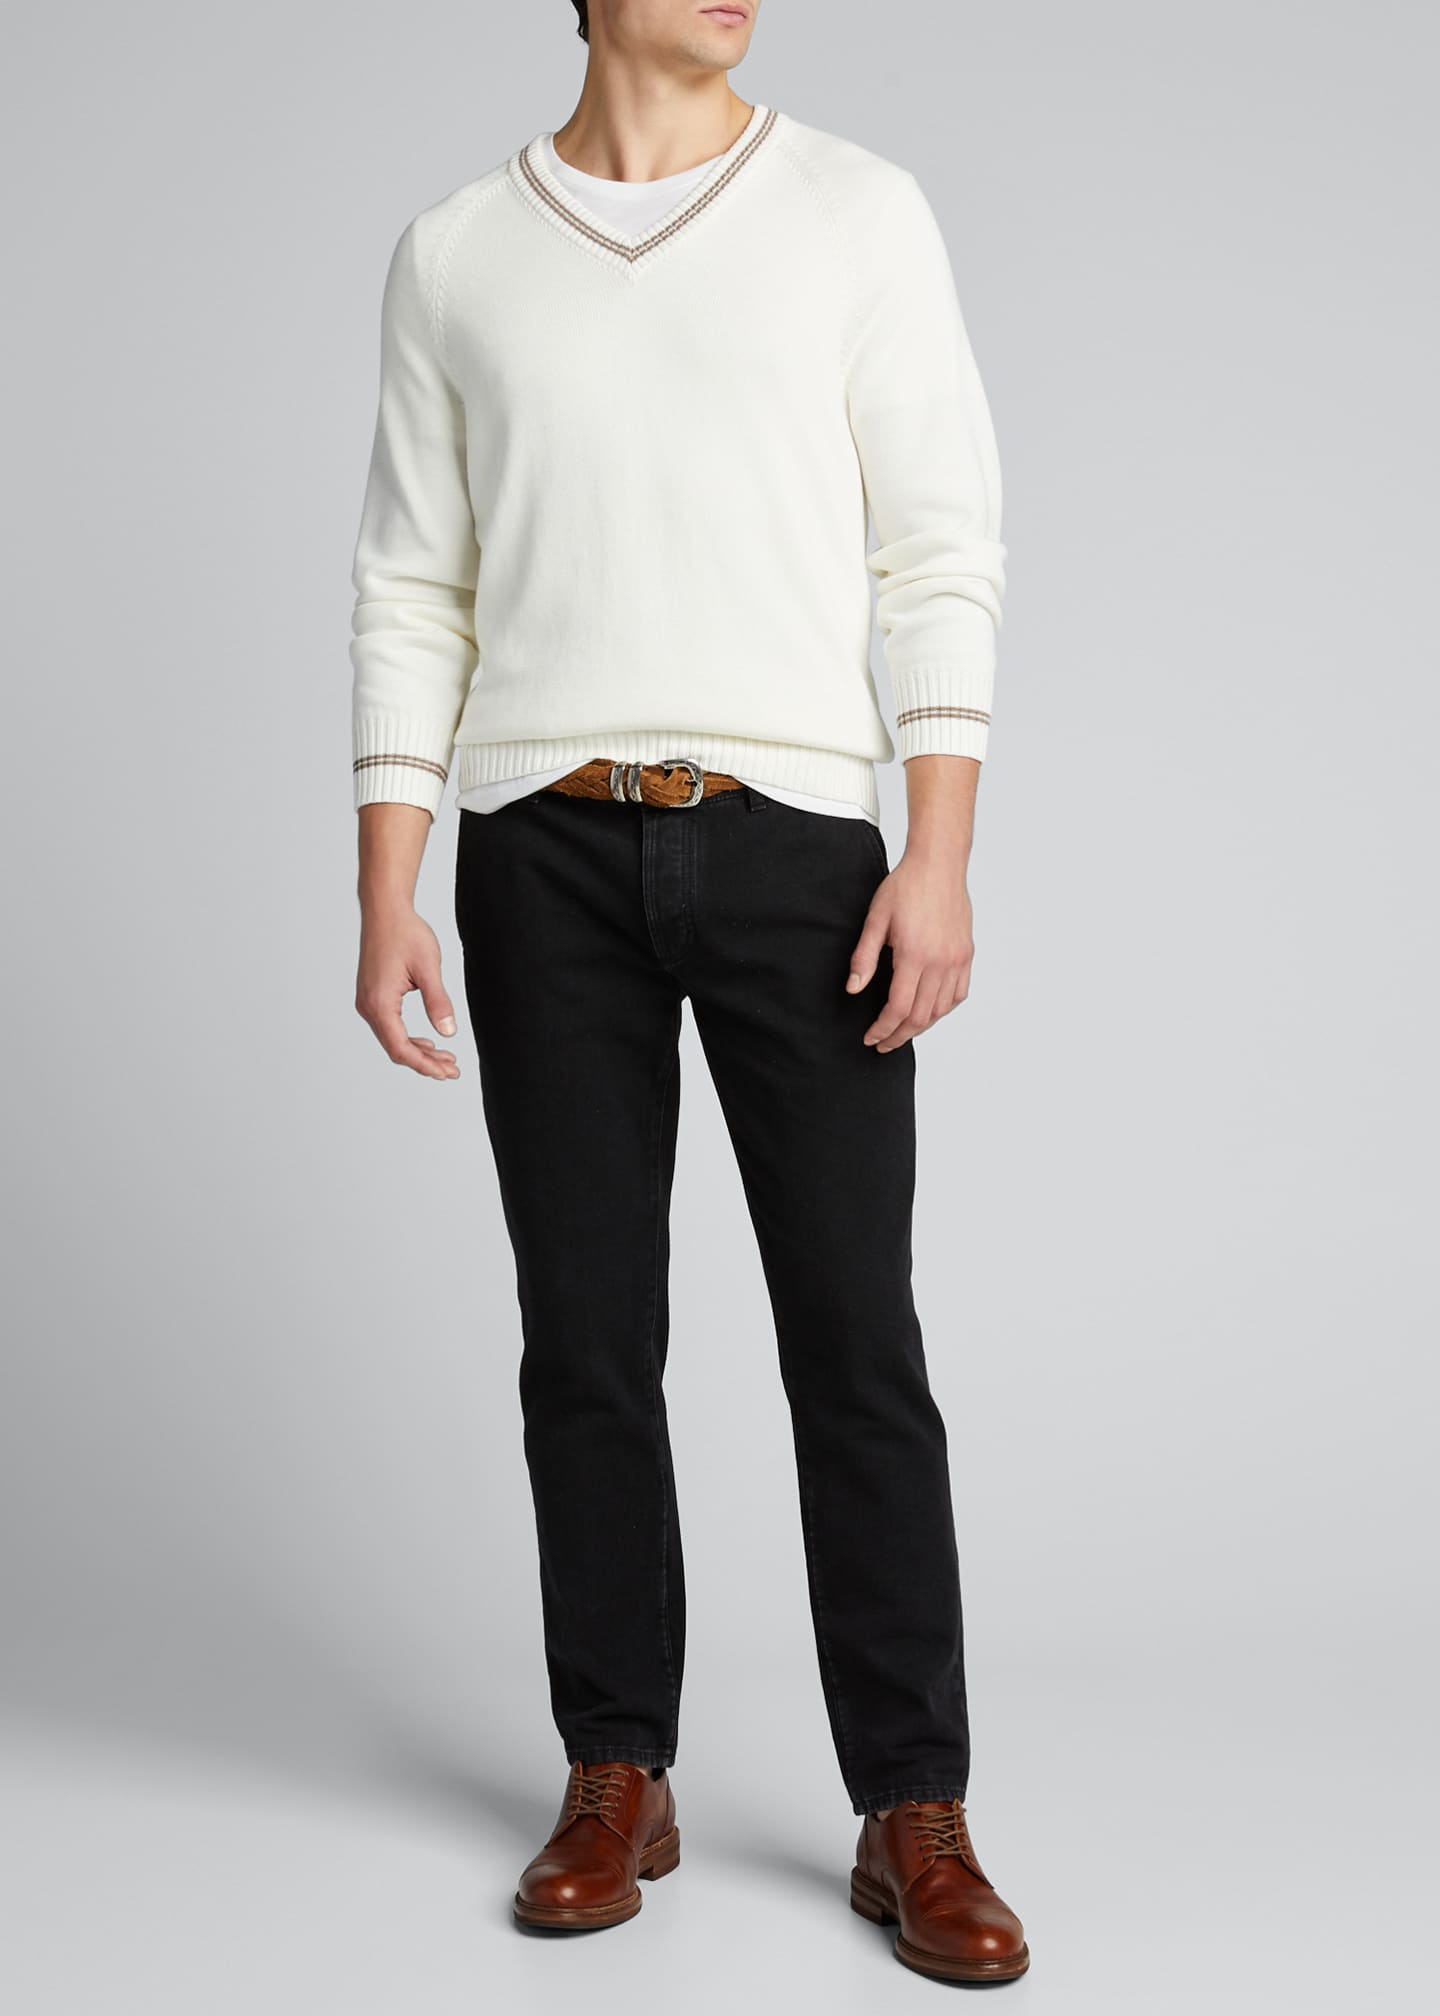 Image 1 of 5: Men's V-Neck Sweater with Contrast Tipping